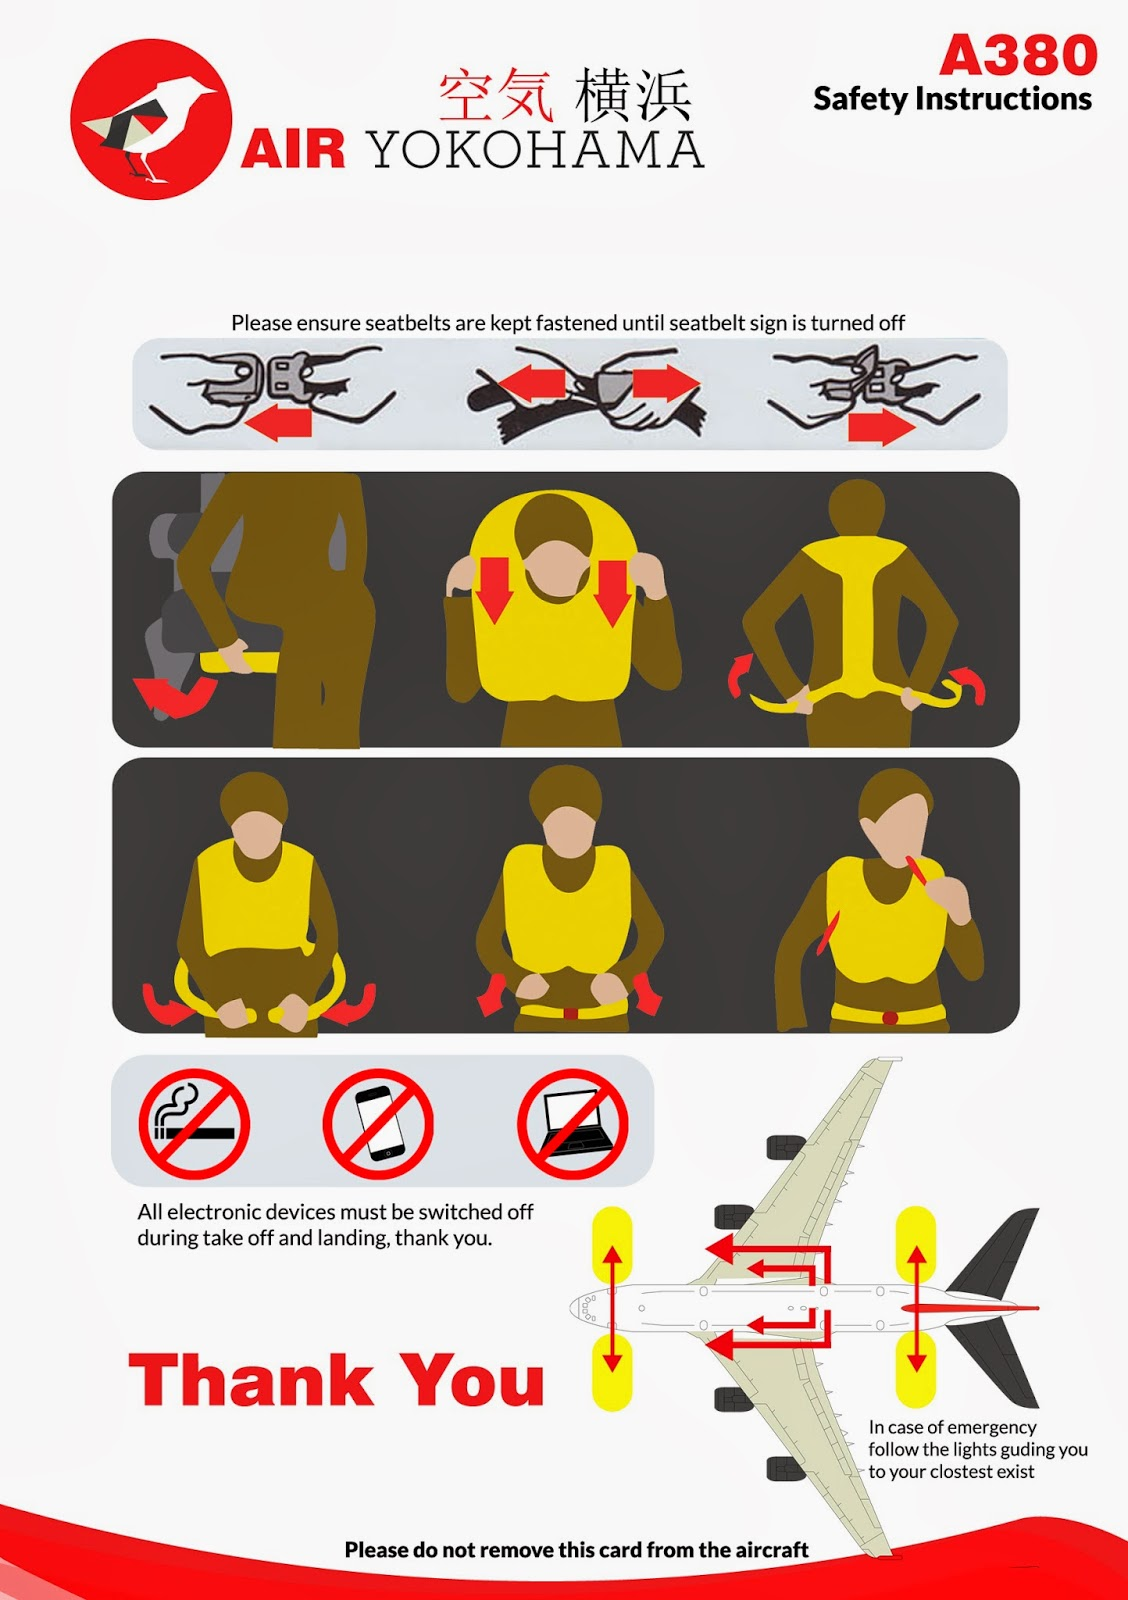 Plane Livery Unit 41 Words Images In Graphic Design